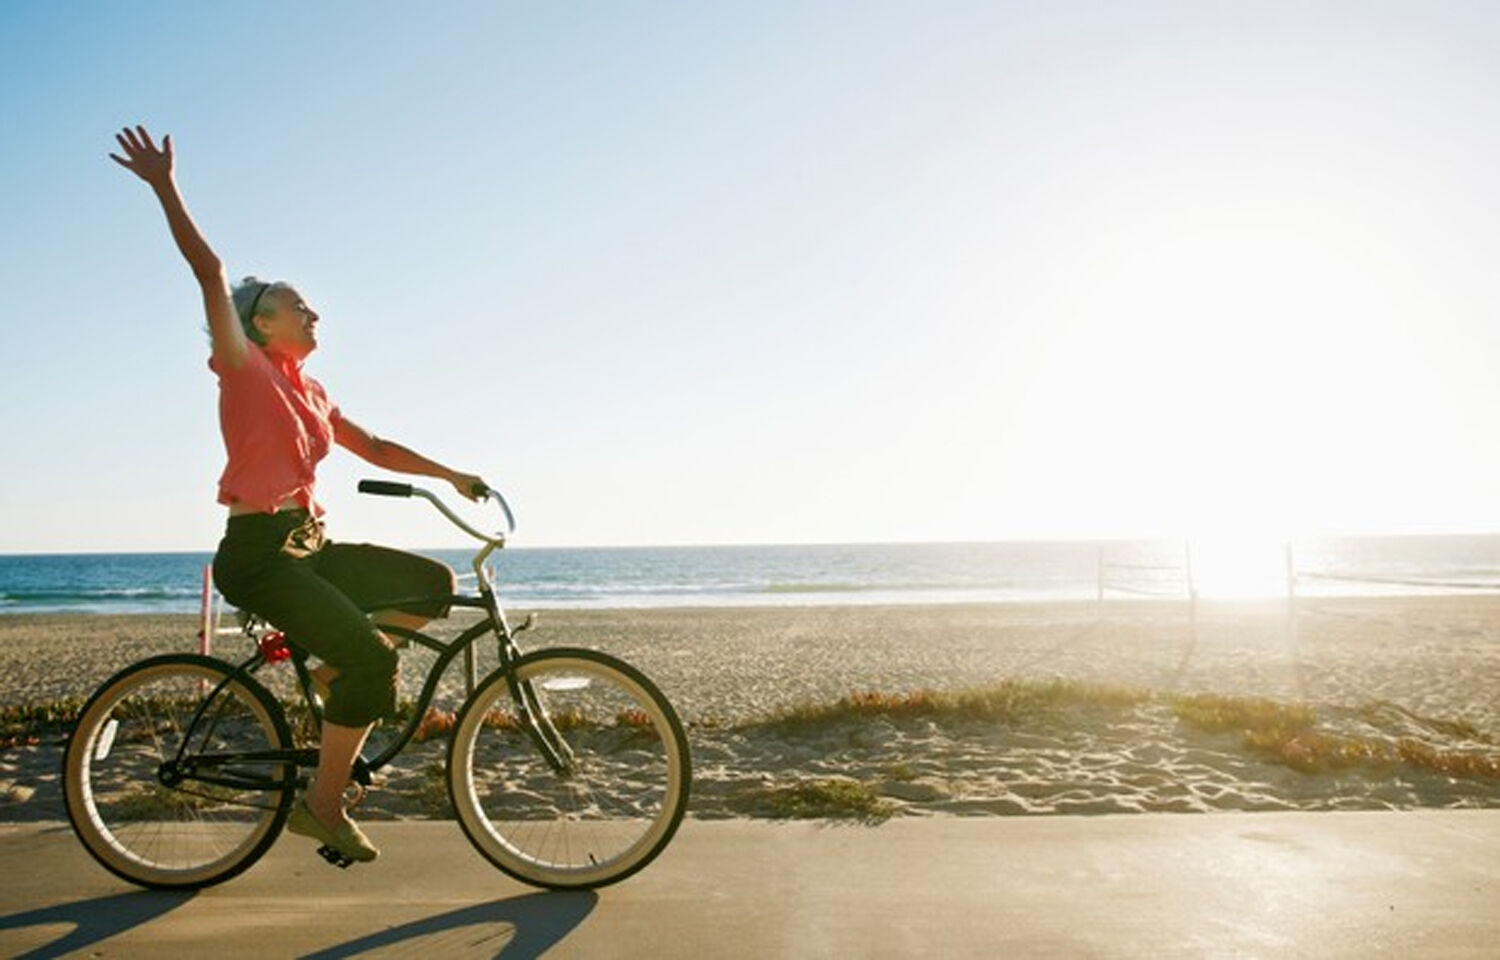 Cycling lowers risk of premature mortality in diabetes patients: JAMA